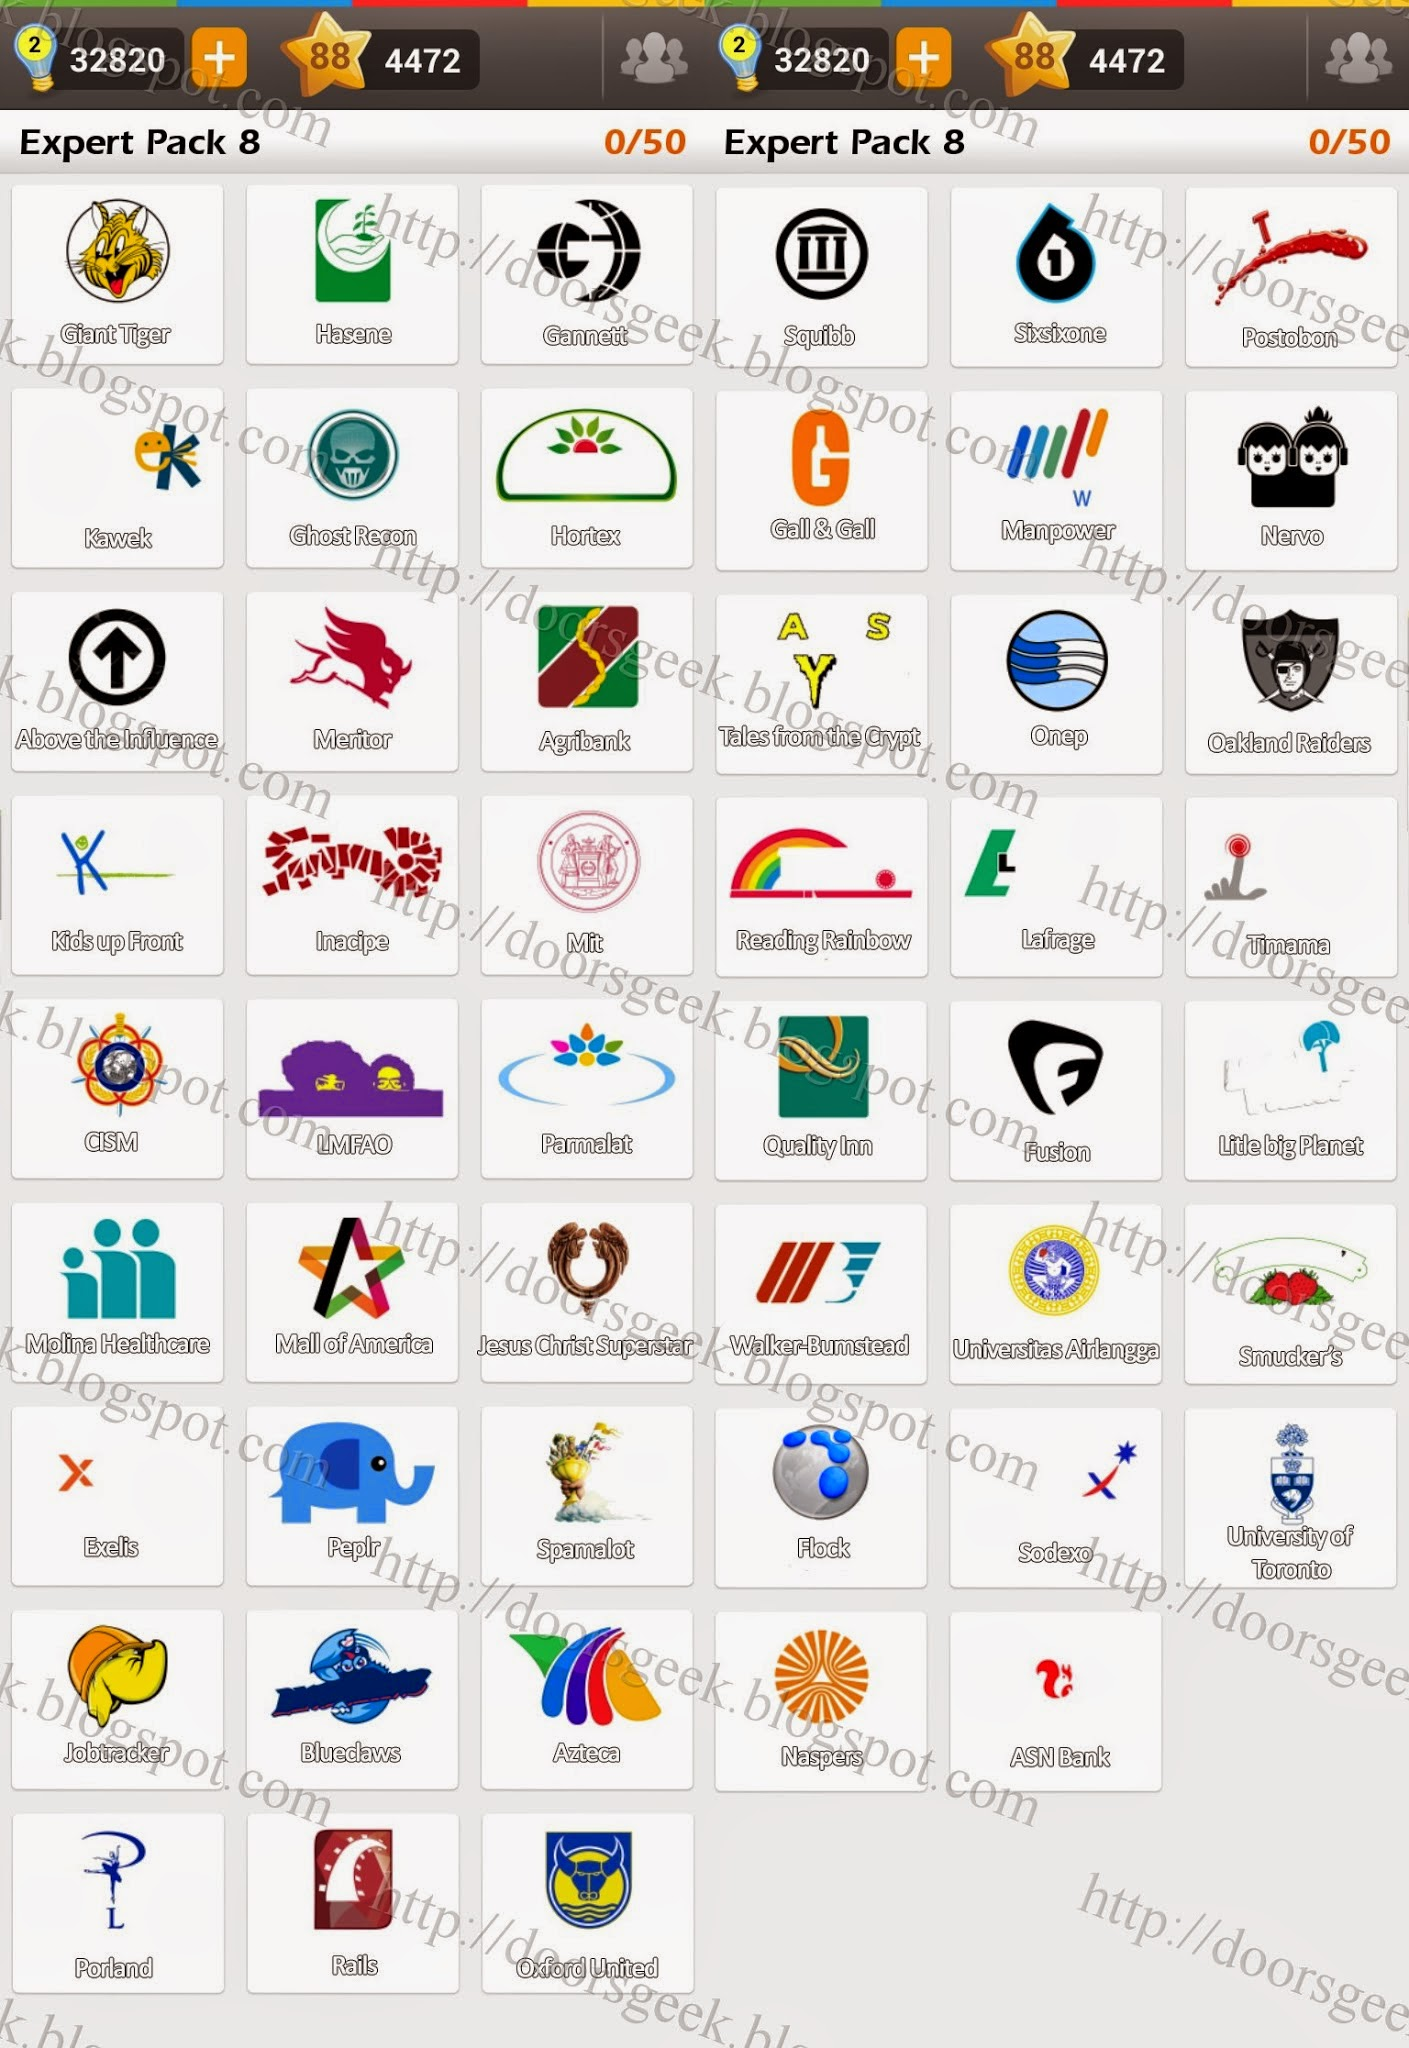 Logo game guess the brand bonus cars chainimage - Answers In Expert Pack 8 Are